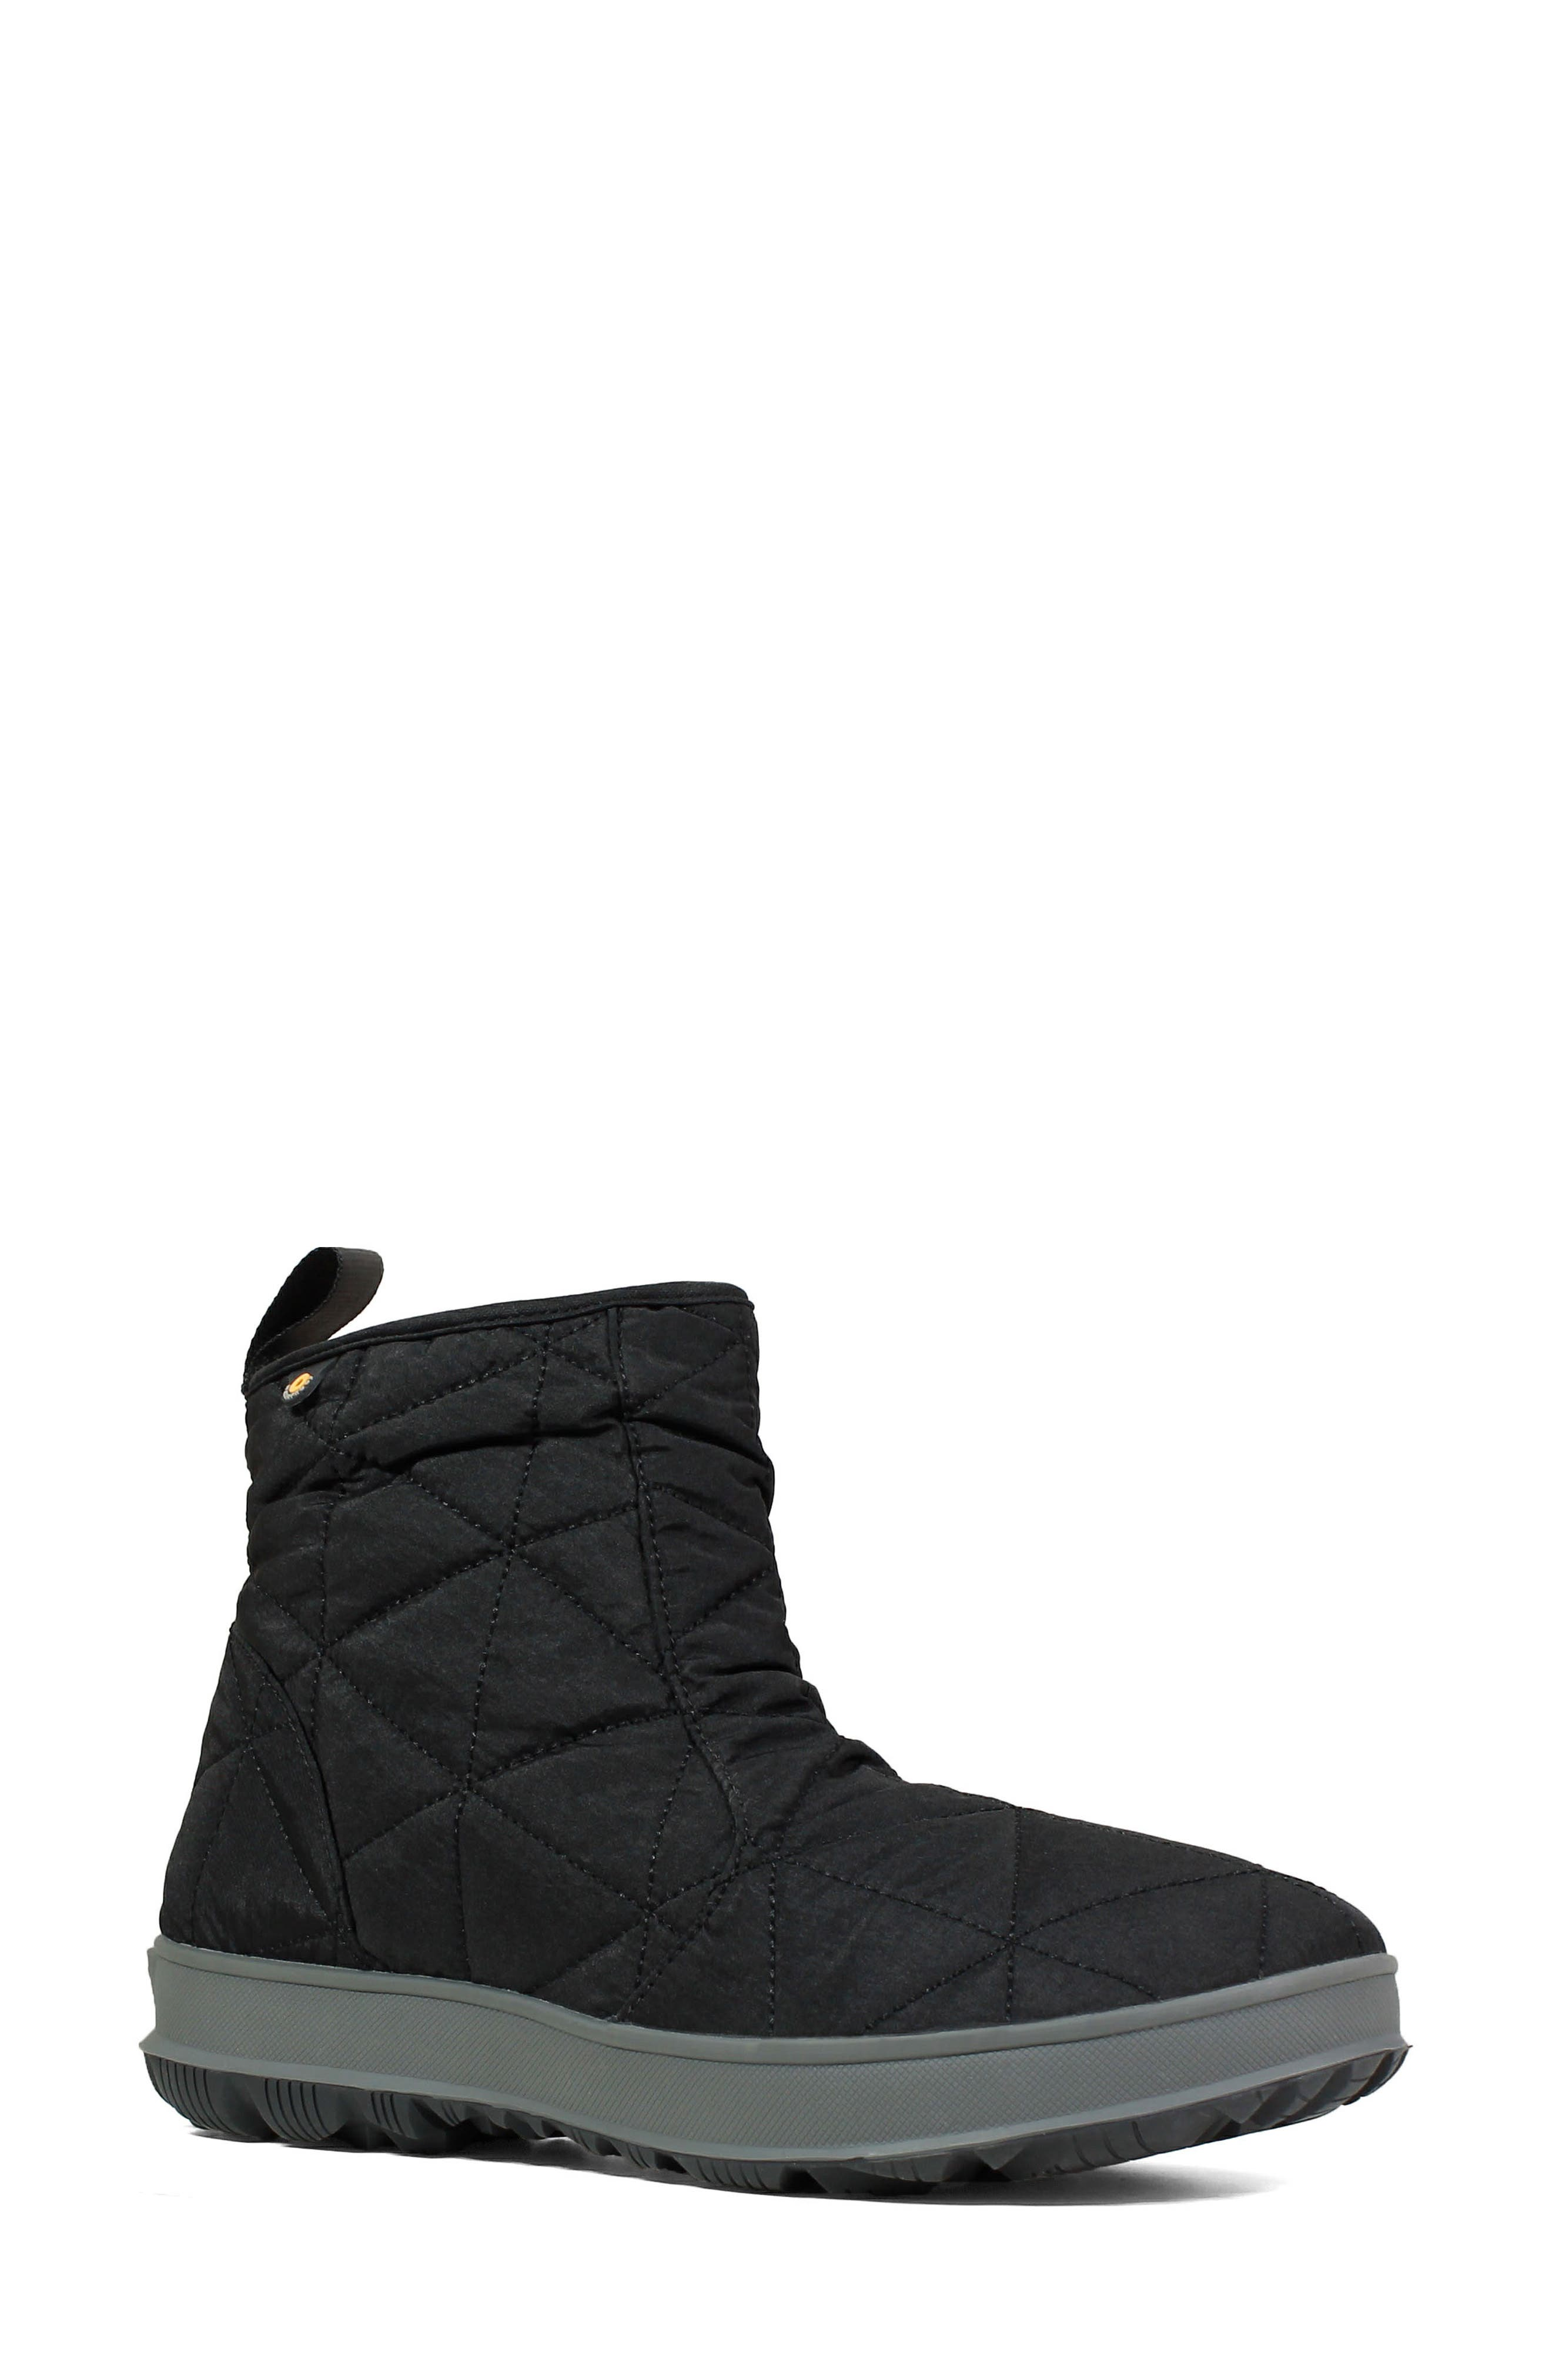 Snowday Waterproof Quilted Snow Boot, Main, color, 001